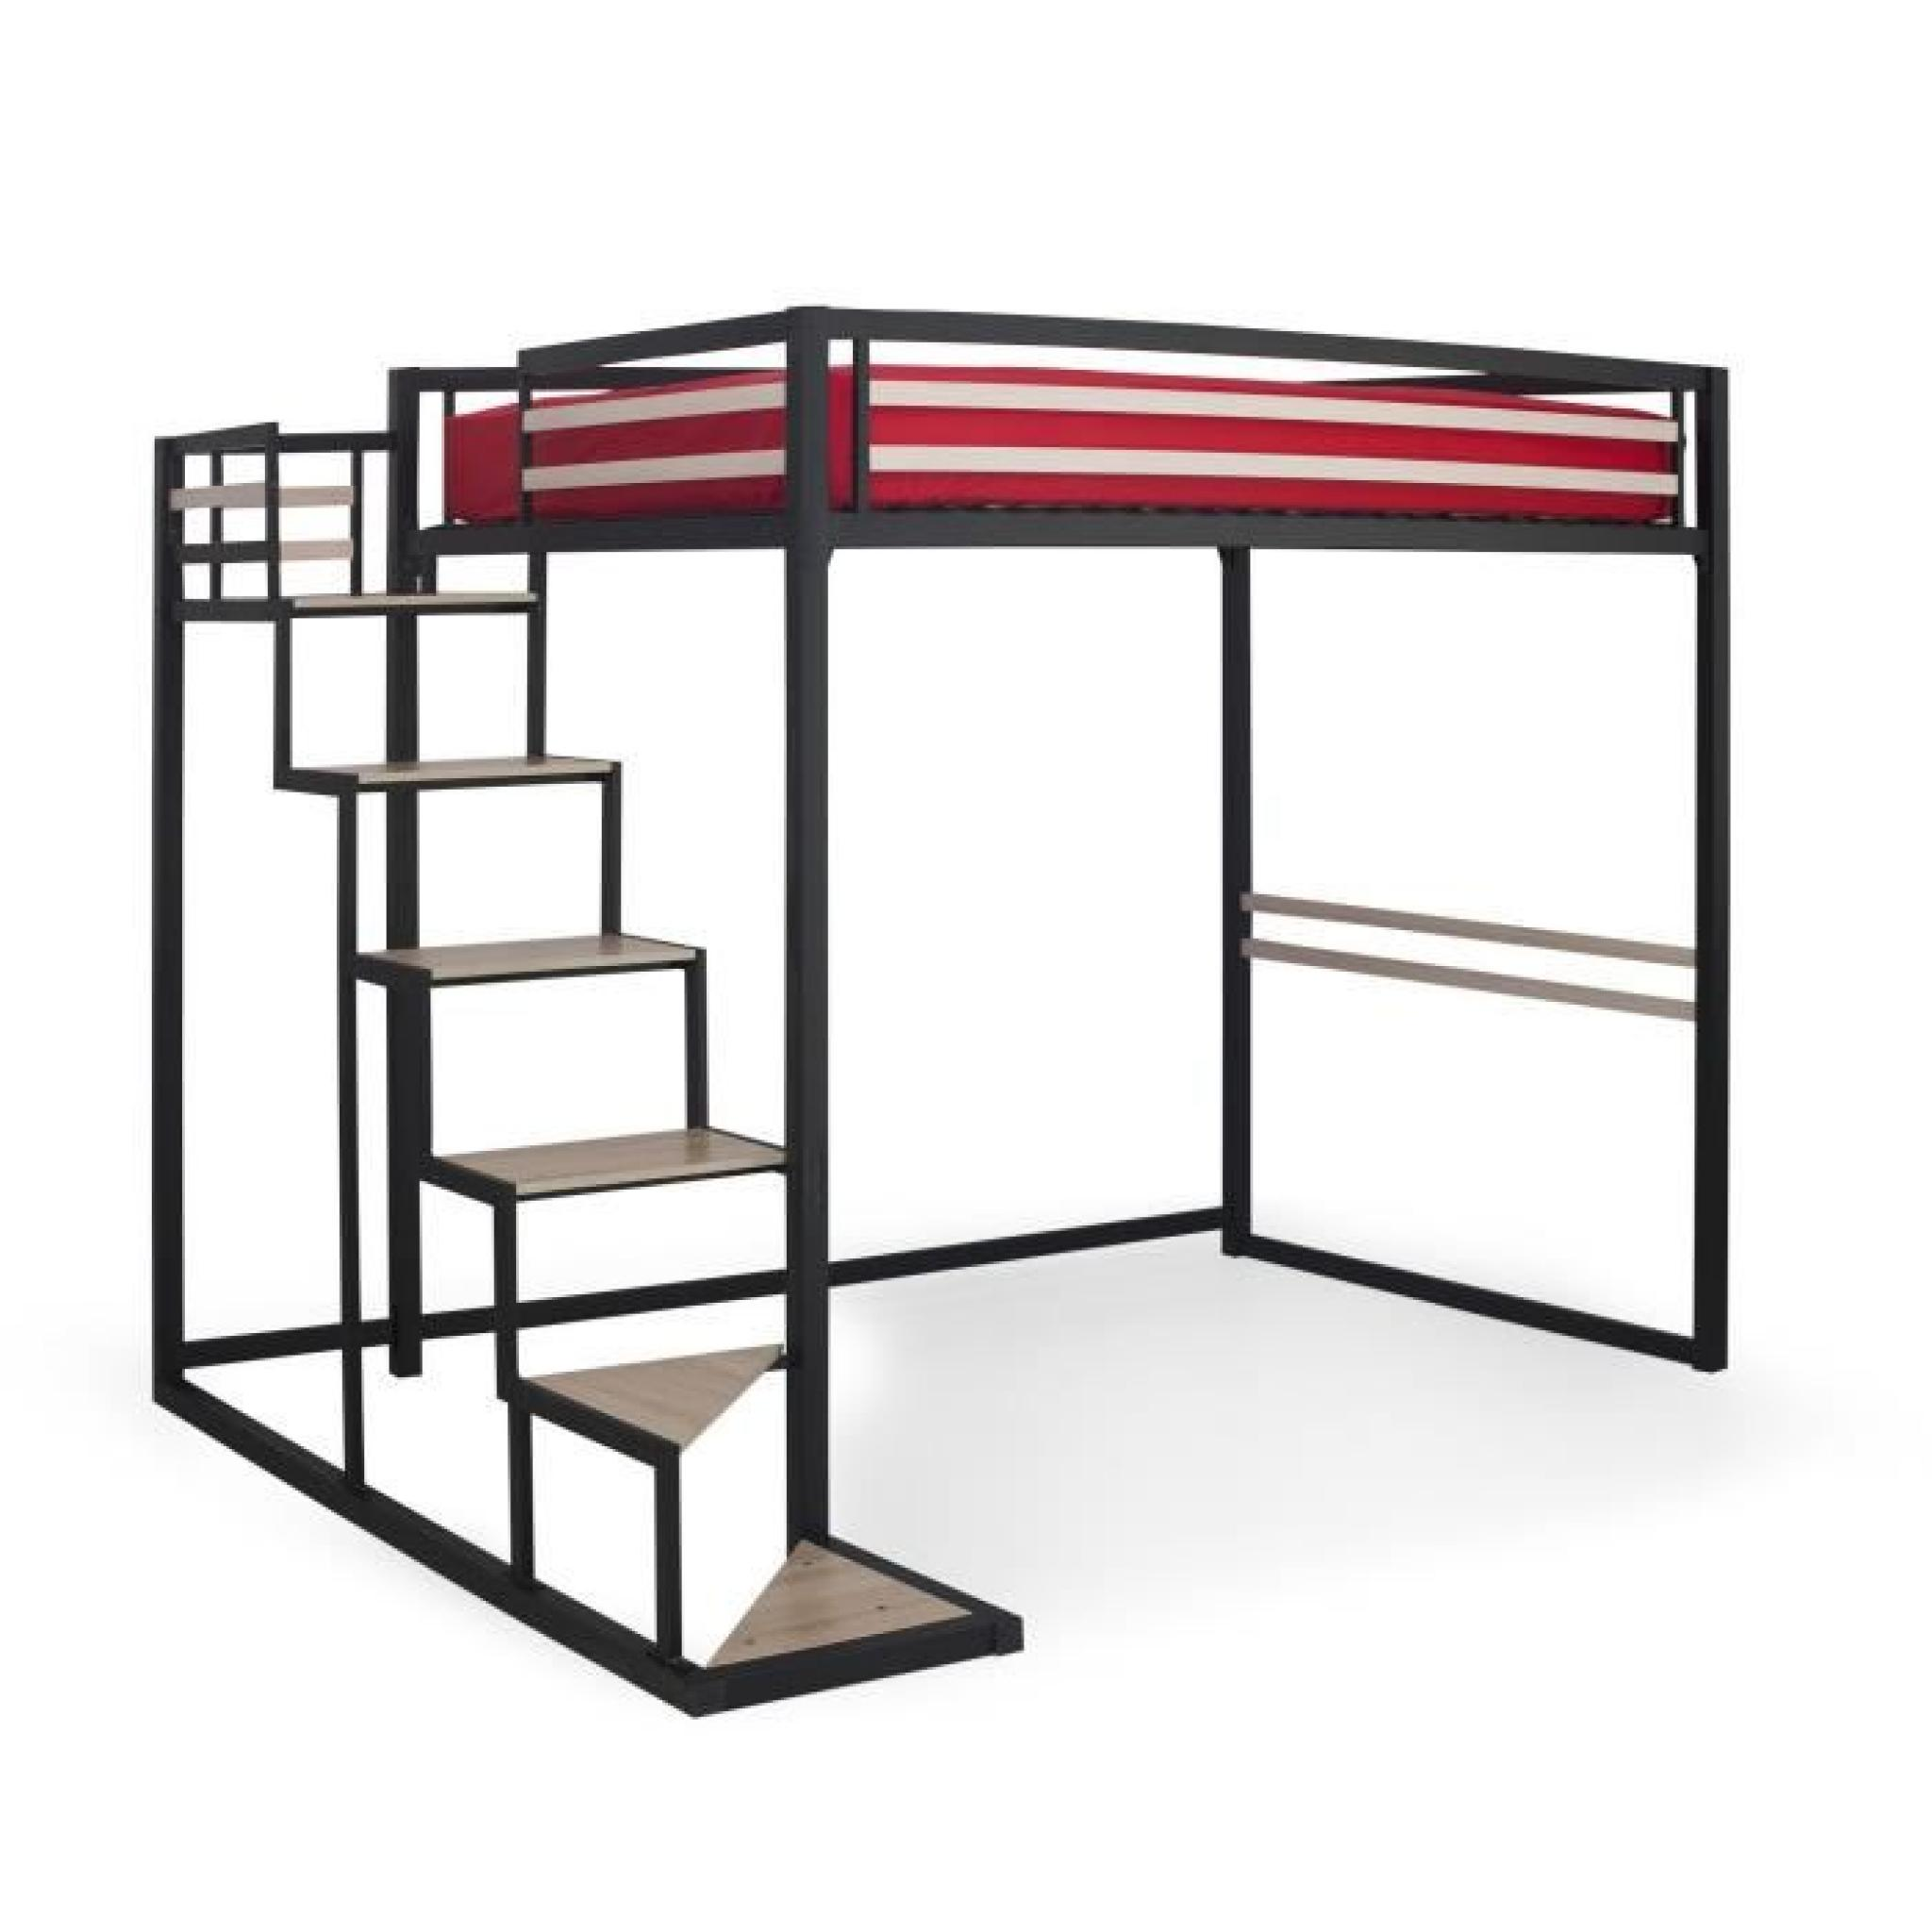 home mezzanine 140x200 achat vente lit mezzanine pas. Black Bedroom Furniture Sets. Home Design Ideas